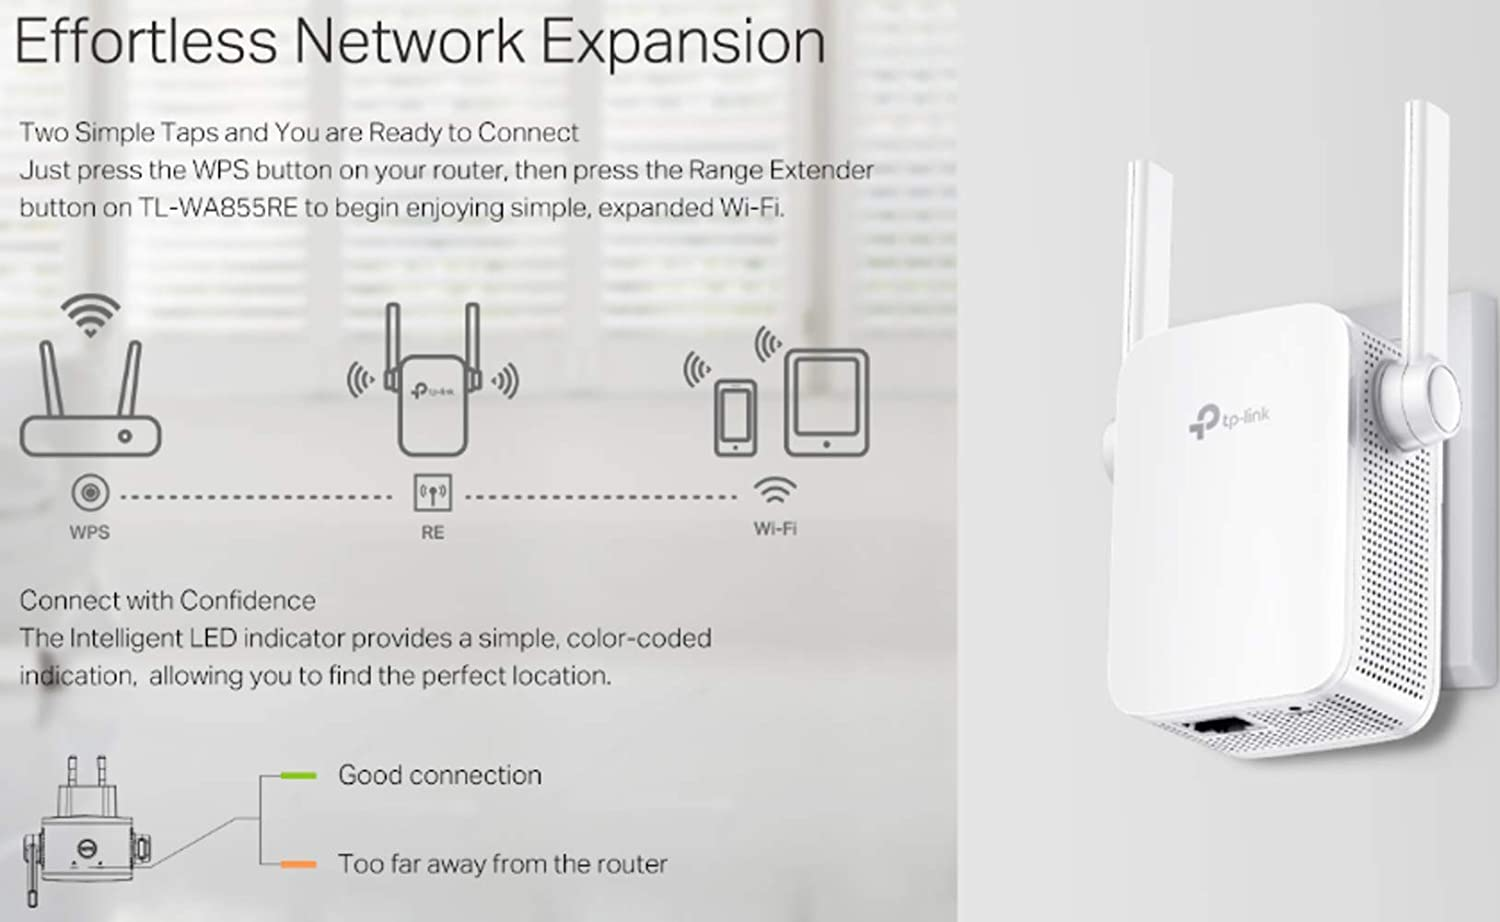 Tp Link N300 Wifi Extender Up To 300mbps Range Has Uploaded 10492 Amplifier Pictures For Their Repeater Signal Booster Access Point Easy Set External Antennas